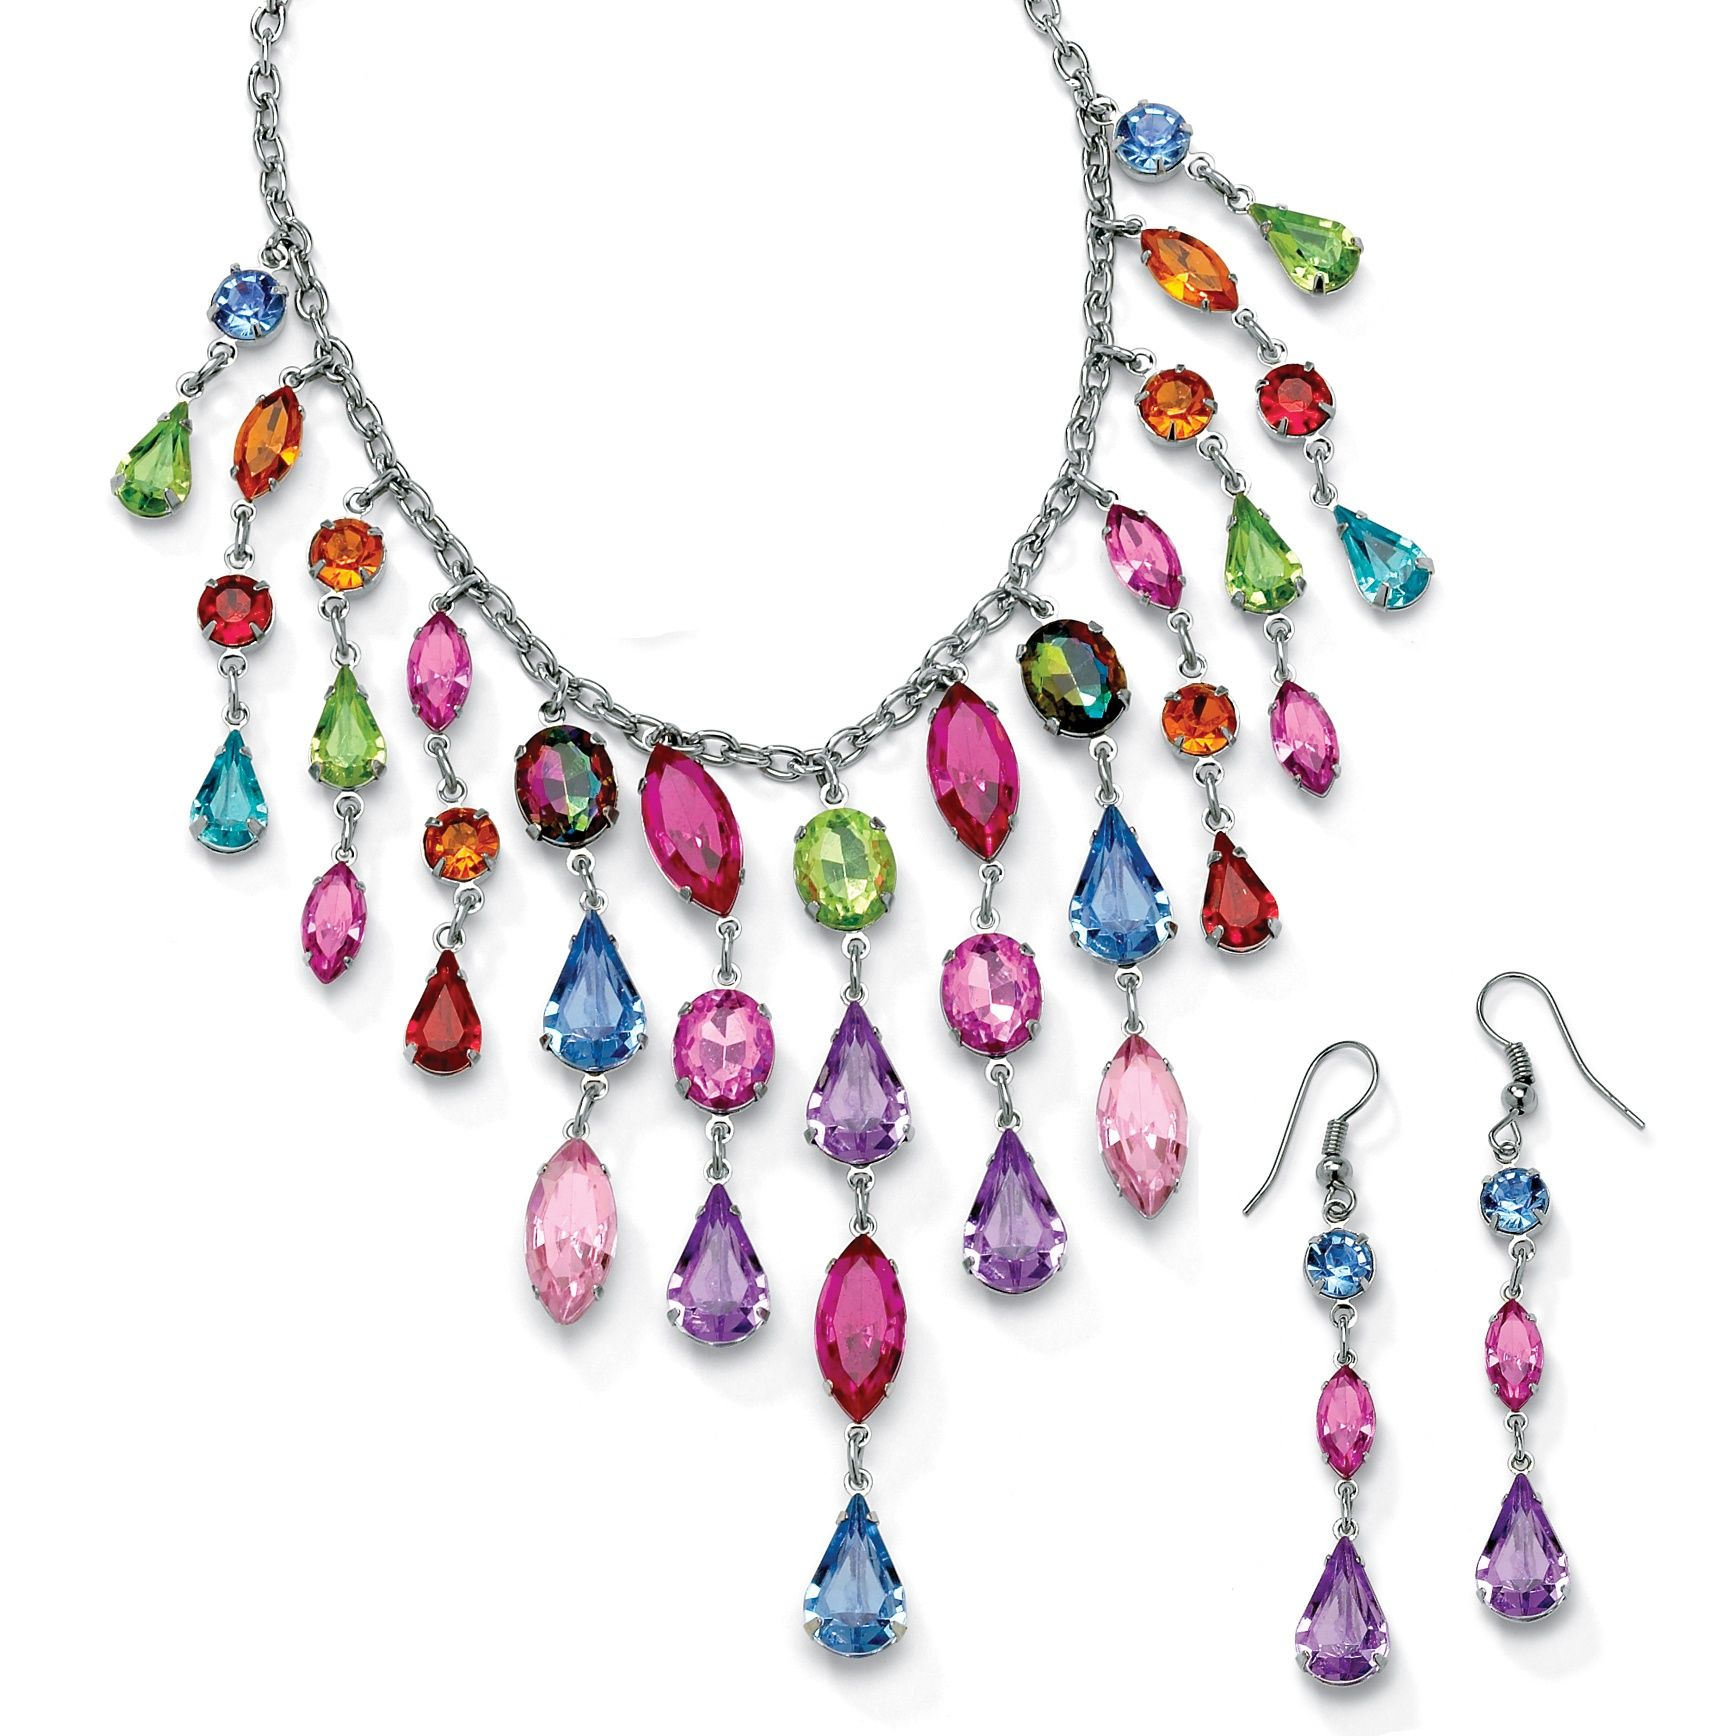 Lots of colors, shapes and sparkle for your jewelry ...